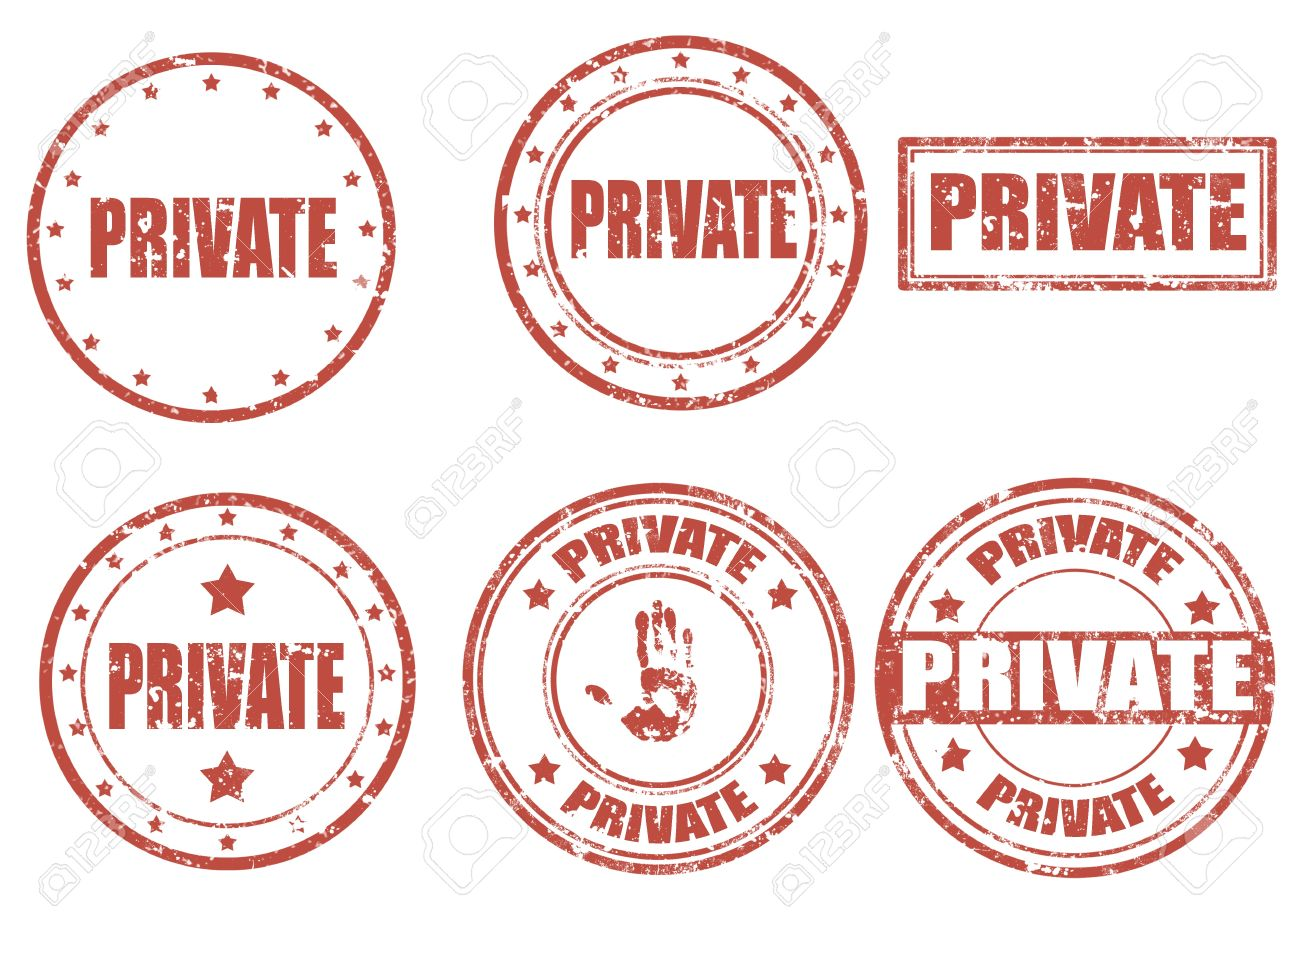 Set of grunge rubber stamps with word privated inside, illustration Stock Vector - 18335451